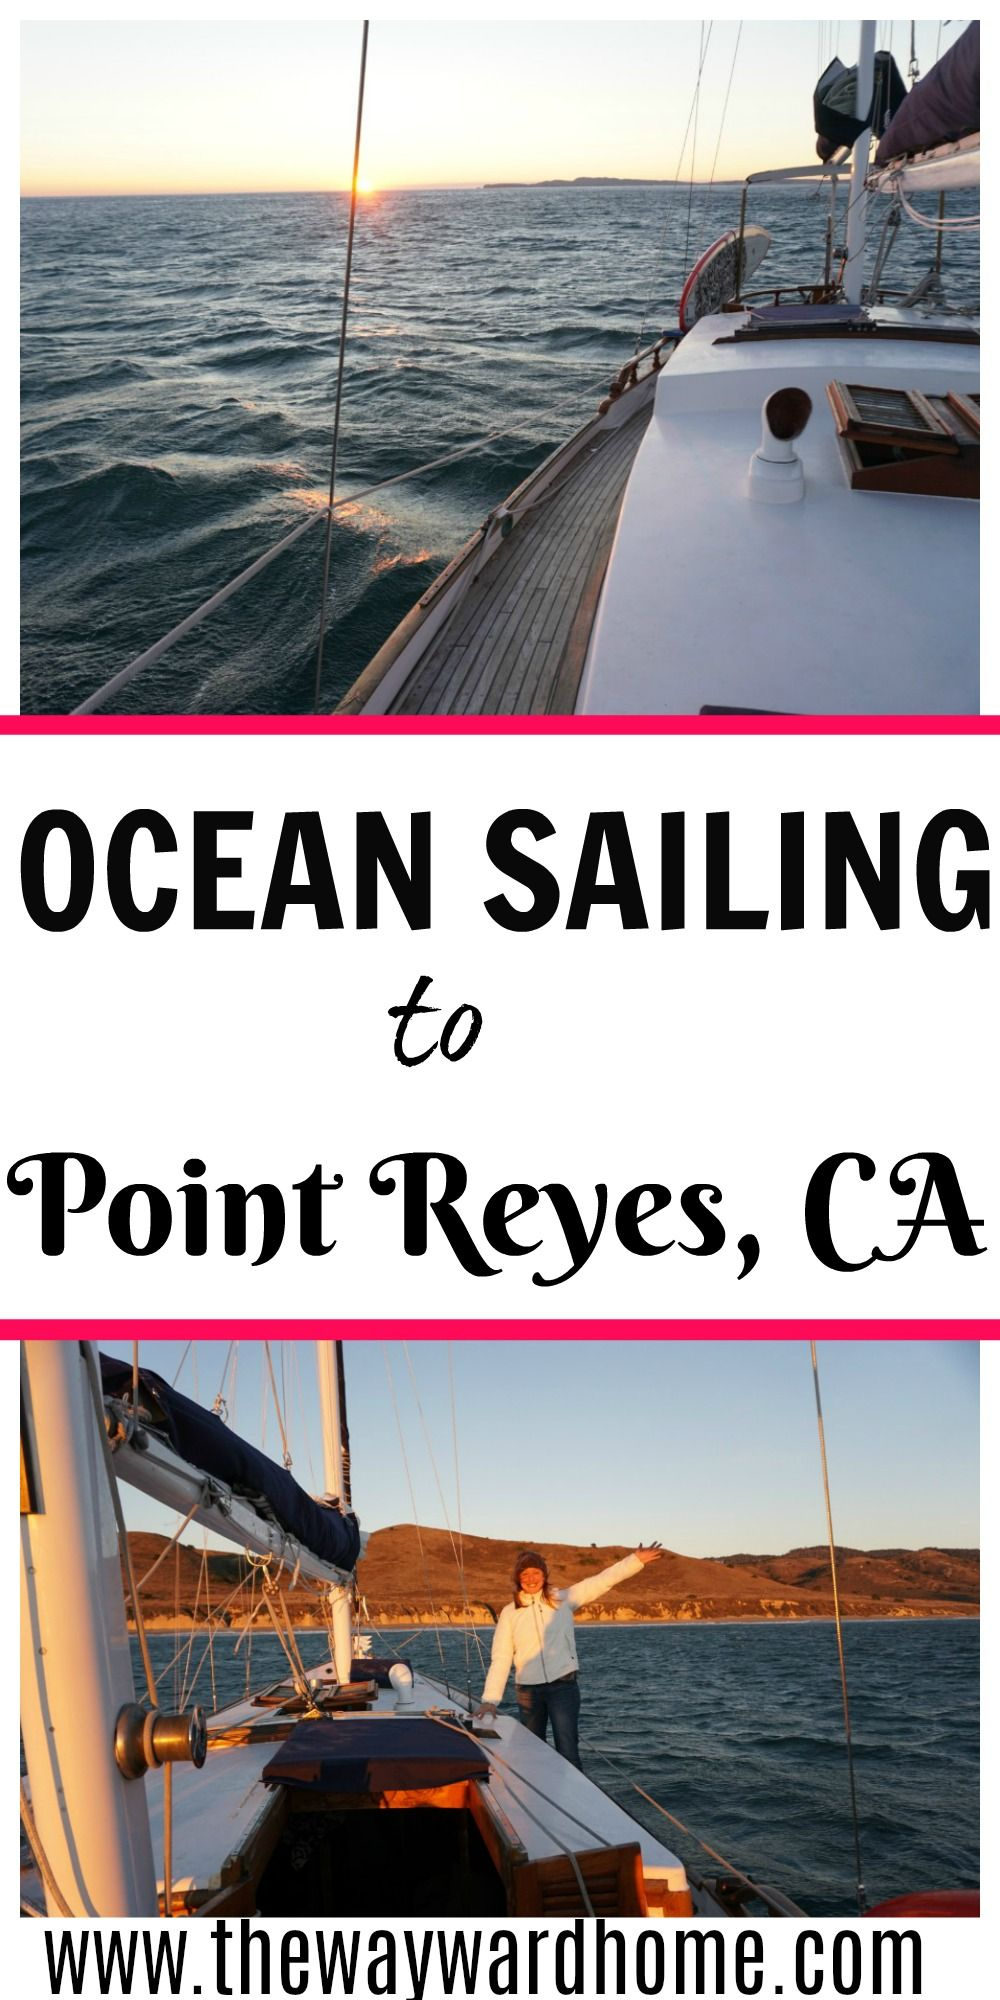 My first time ocean sailing! Exhilarating, beautiful, wild | The